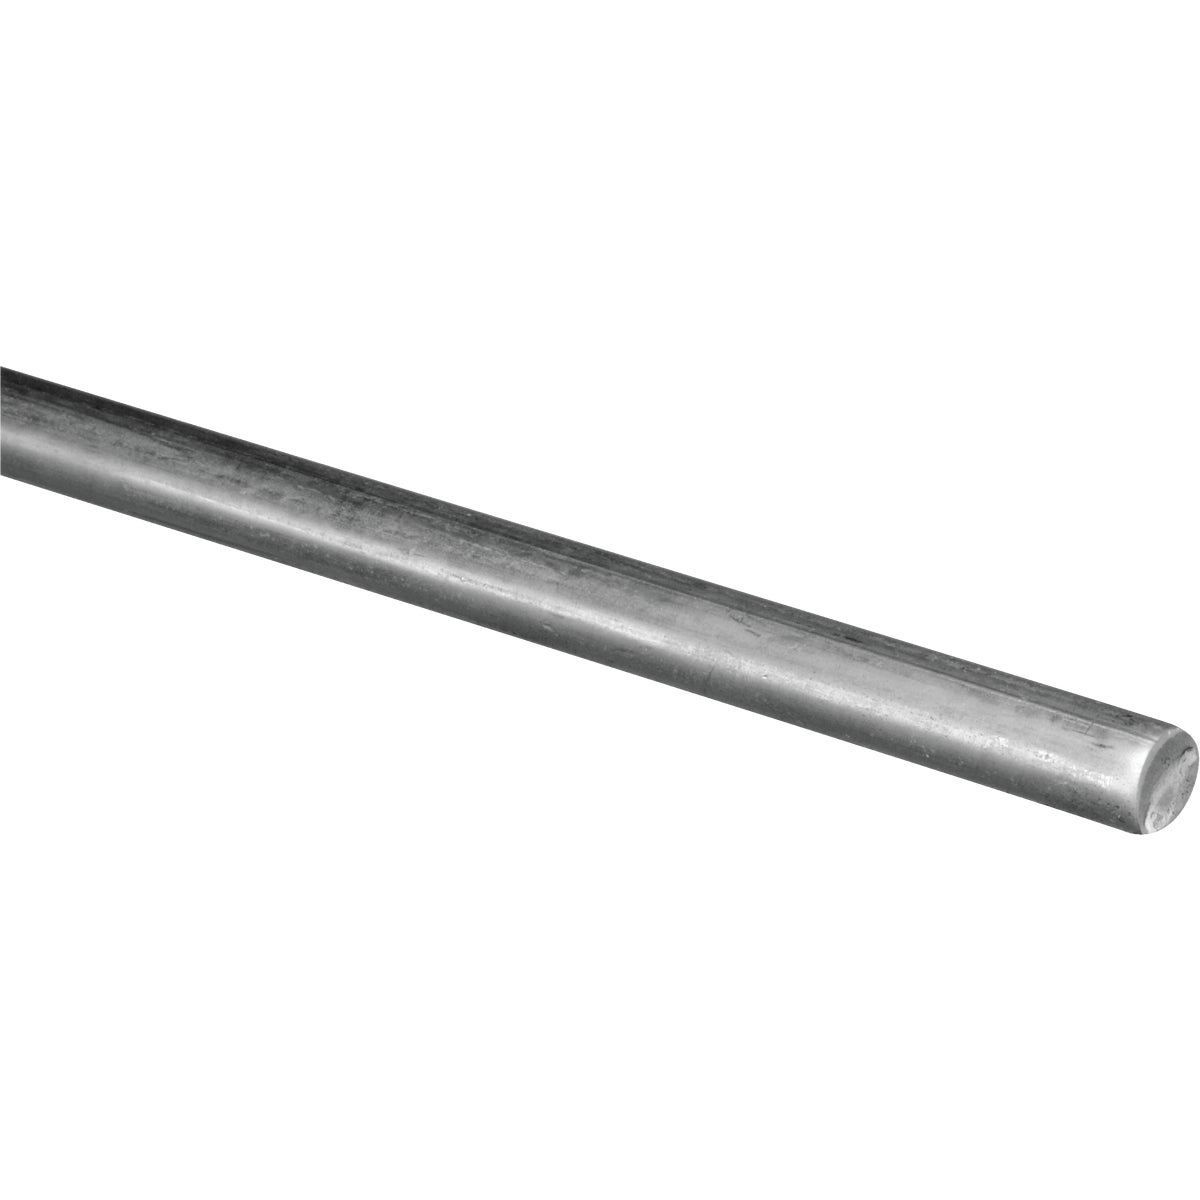 1/4X6' ROUND STEEL ROD - N216176 by National Mfg Co